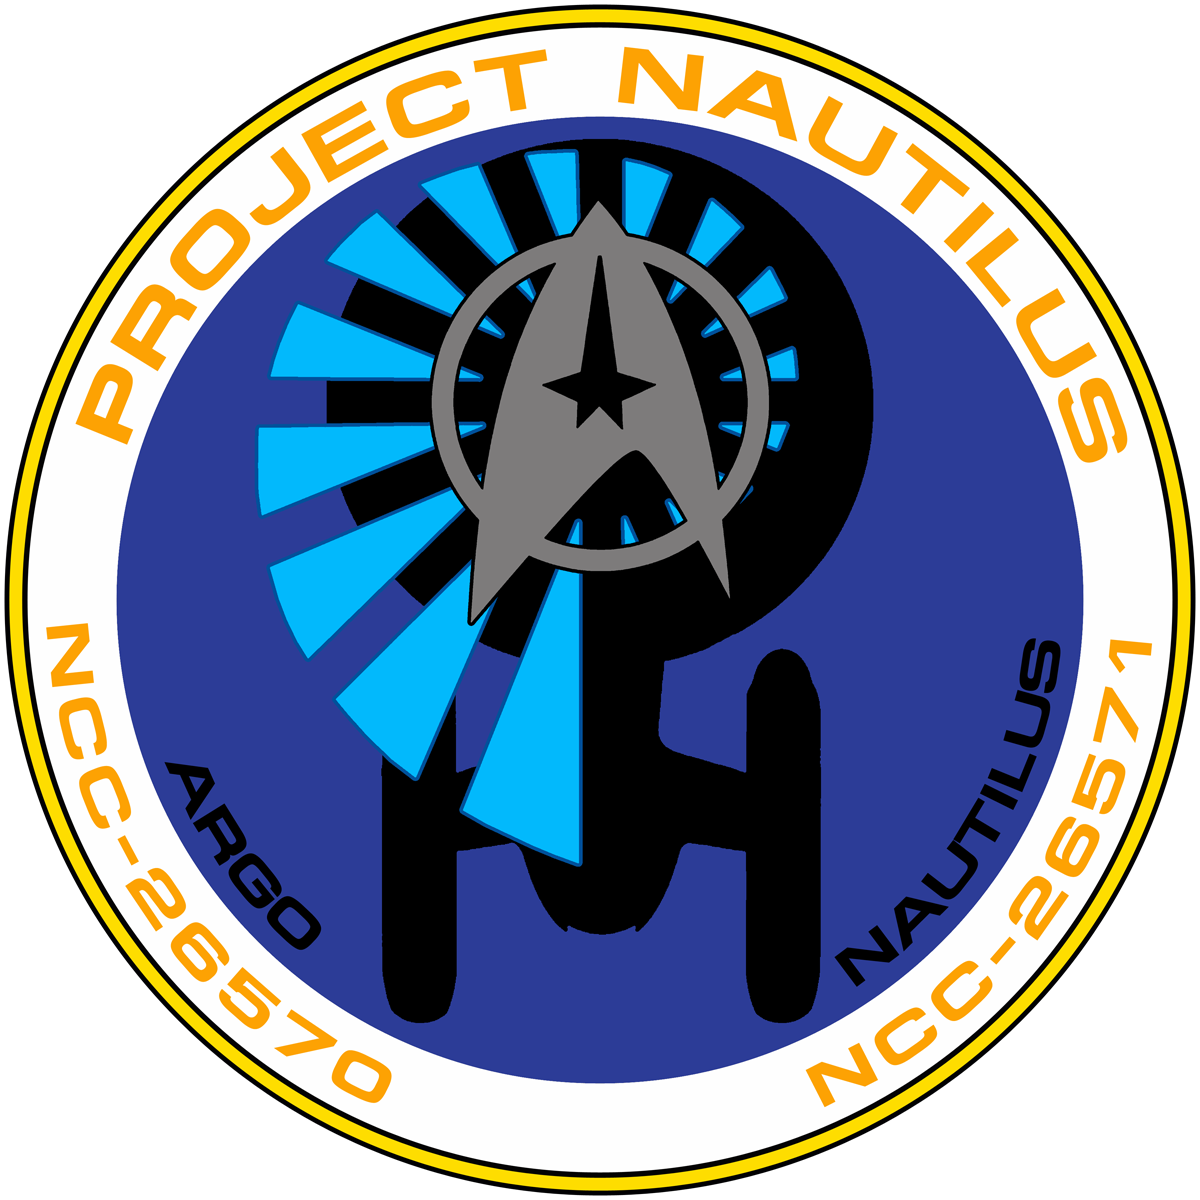 Project_Nautilus_Patch.png